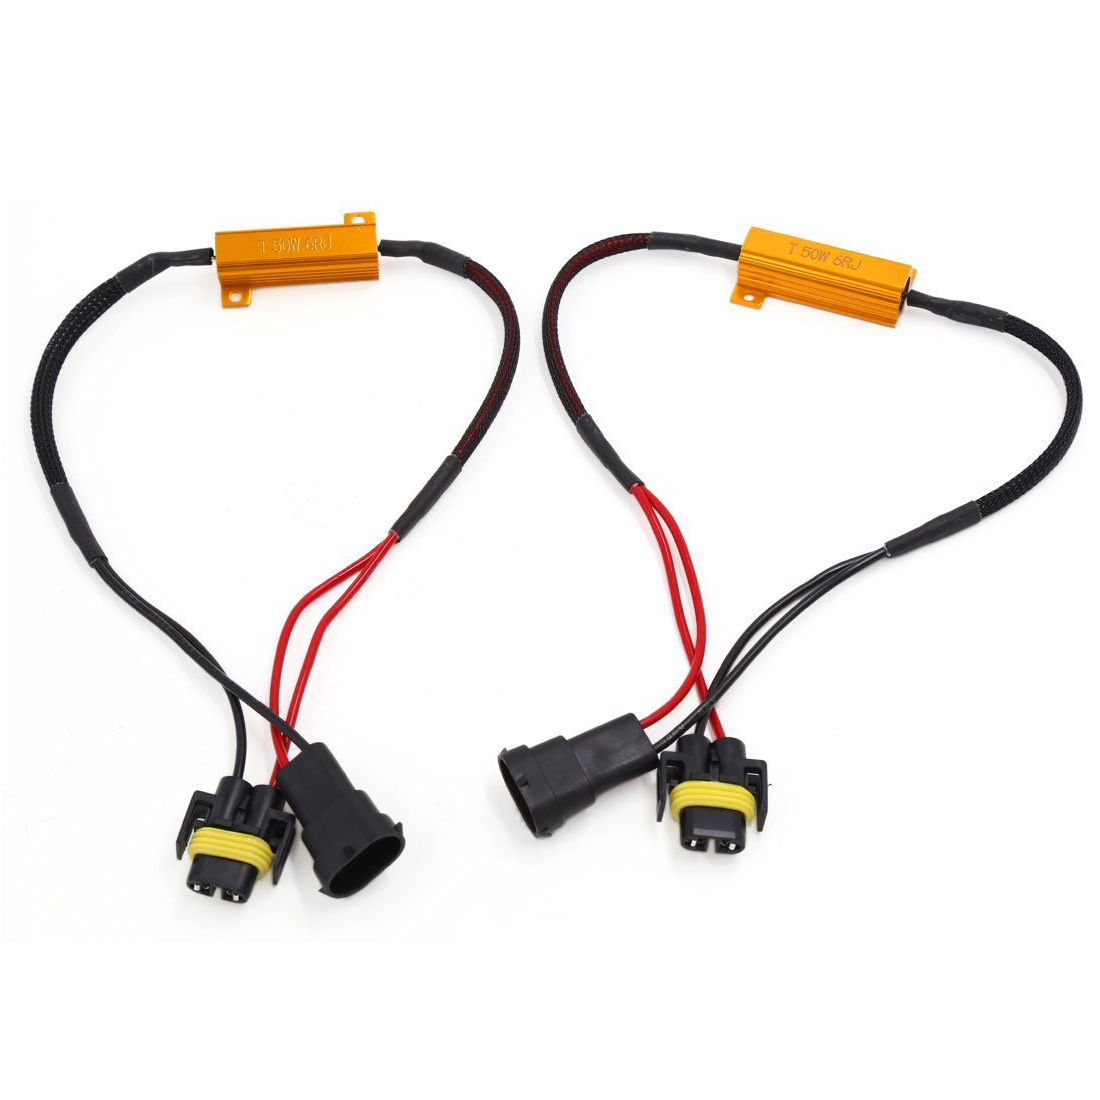 065615 2 pcs h11 error free load resistor bypass wiring harness 50w 6ohm Wiring Harness Diagram at virtualis.co